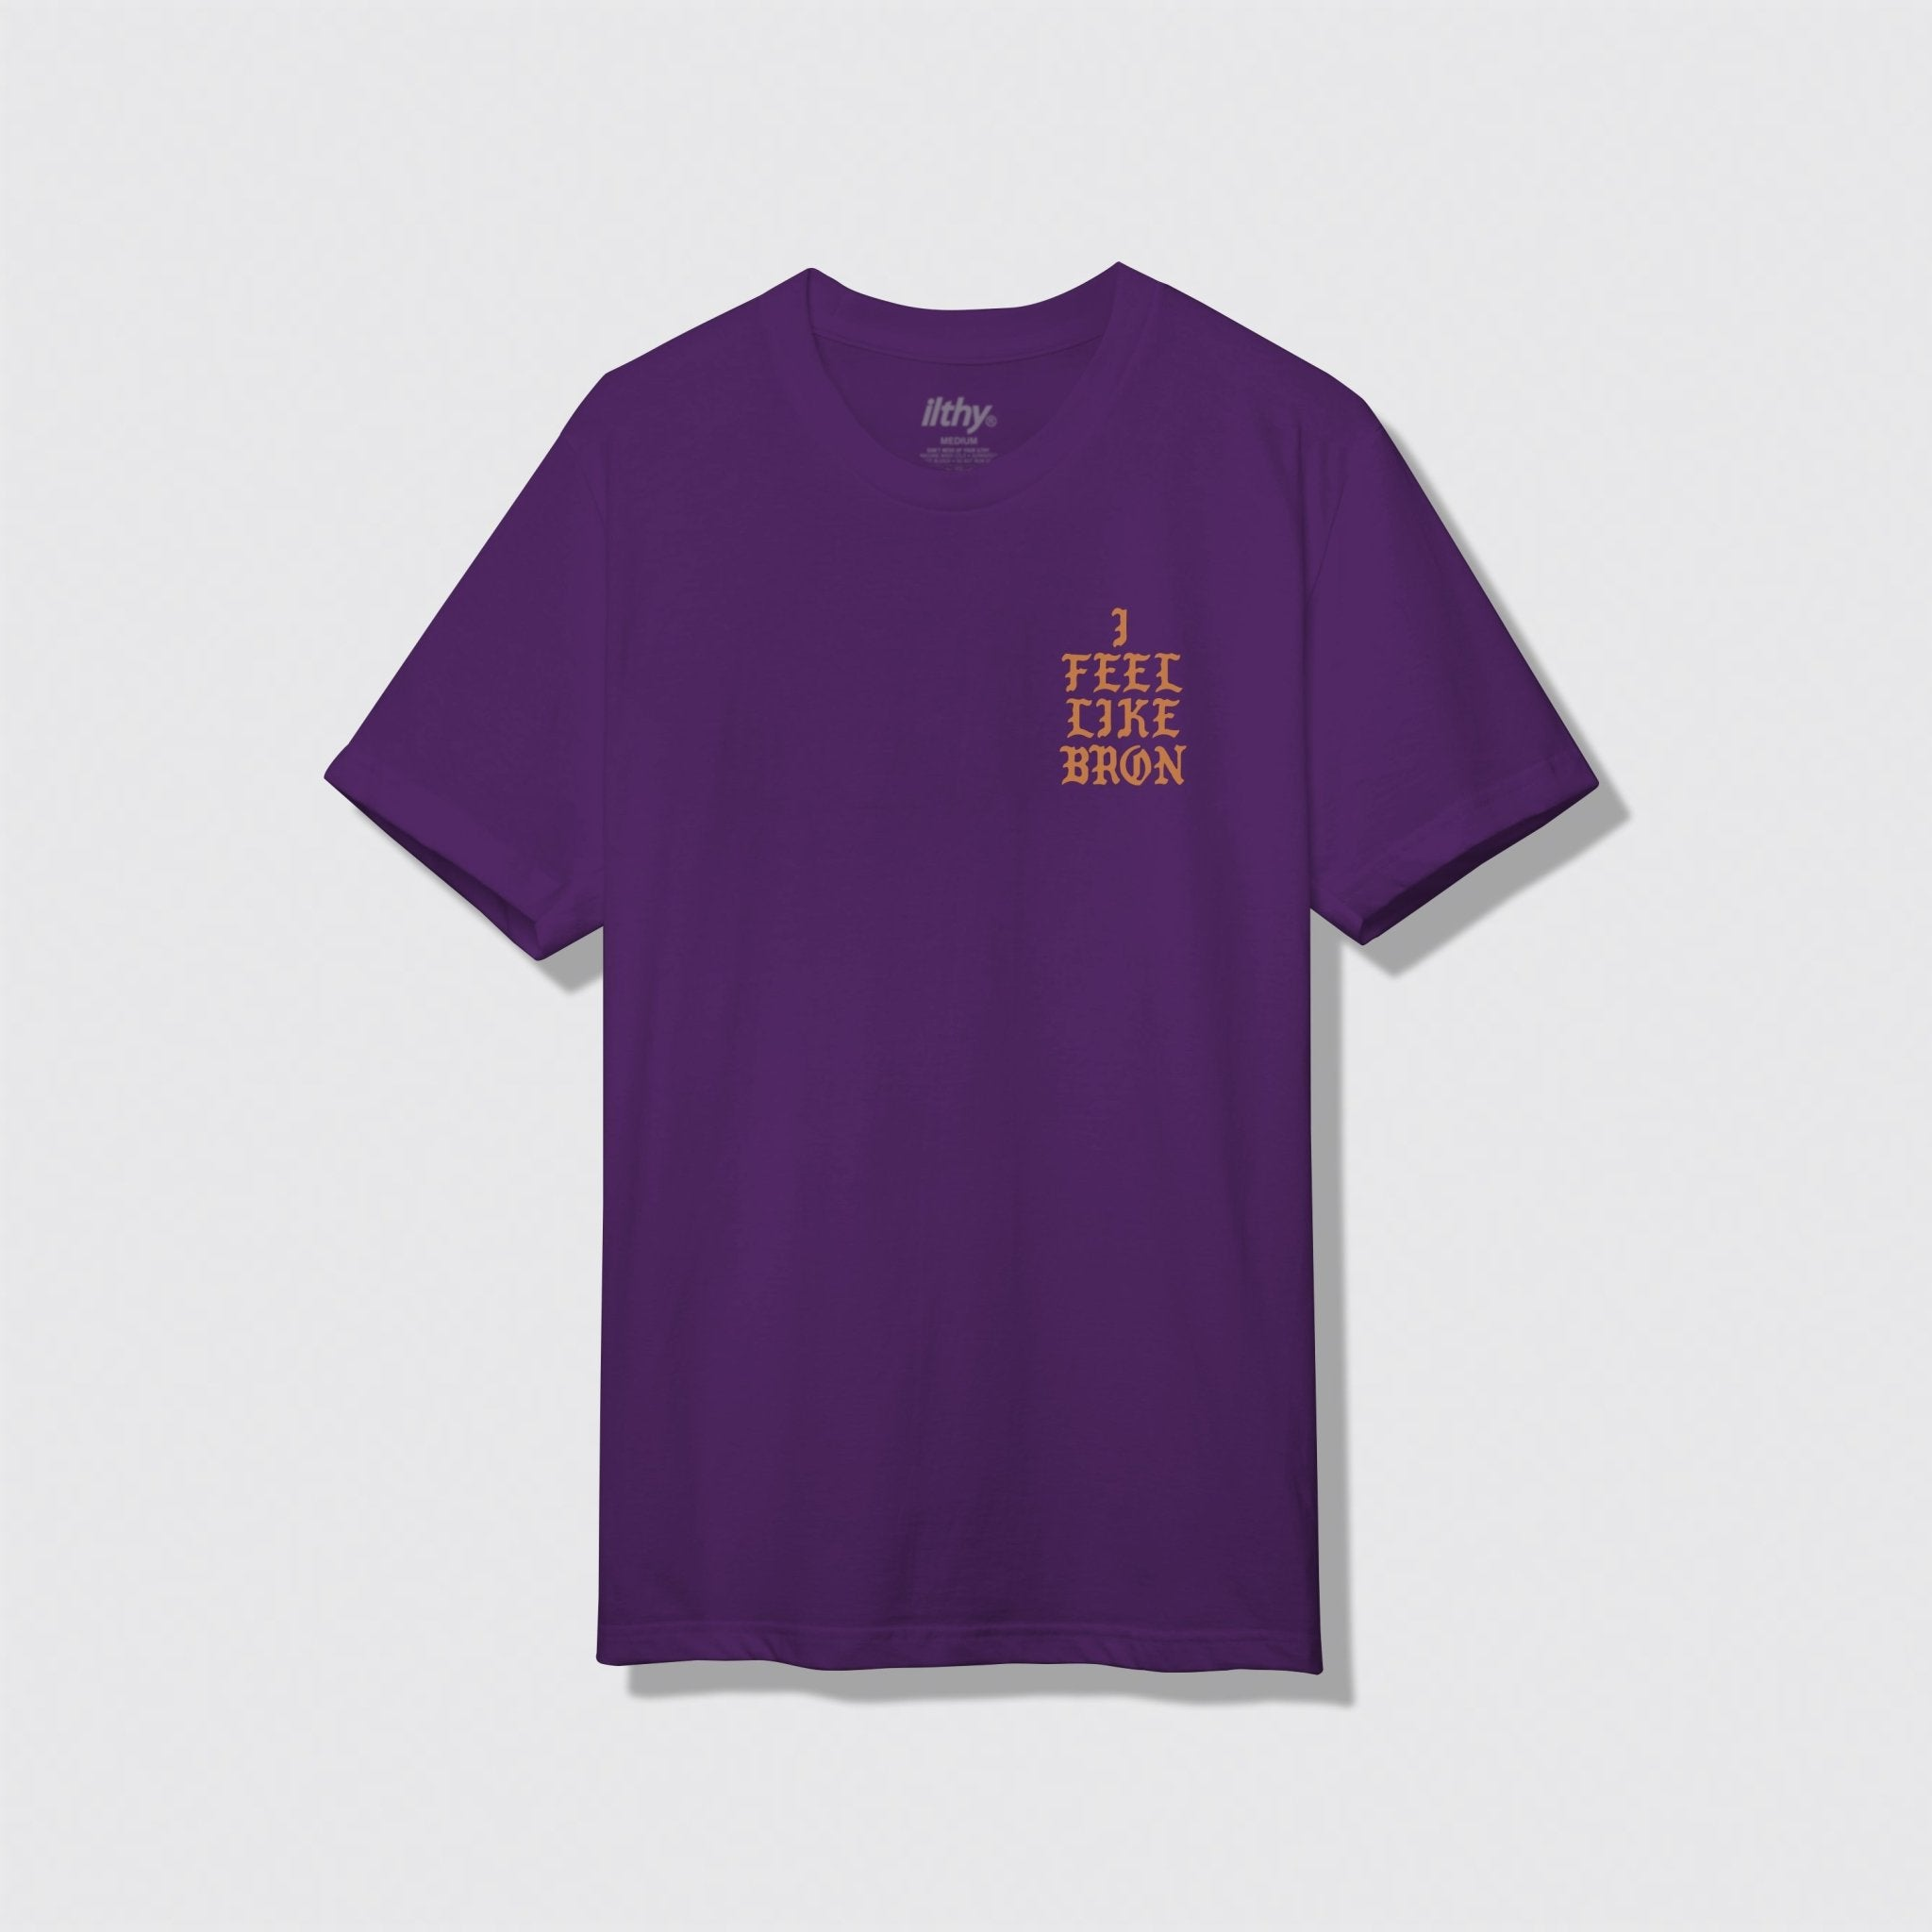 I Feel Like Bron Purple T-Shirt - ILTHY®